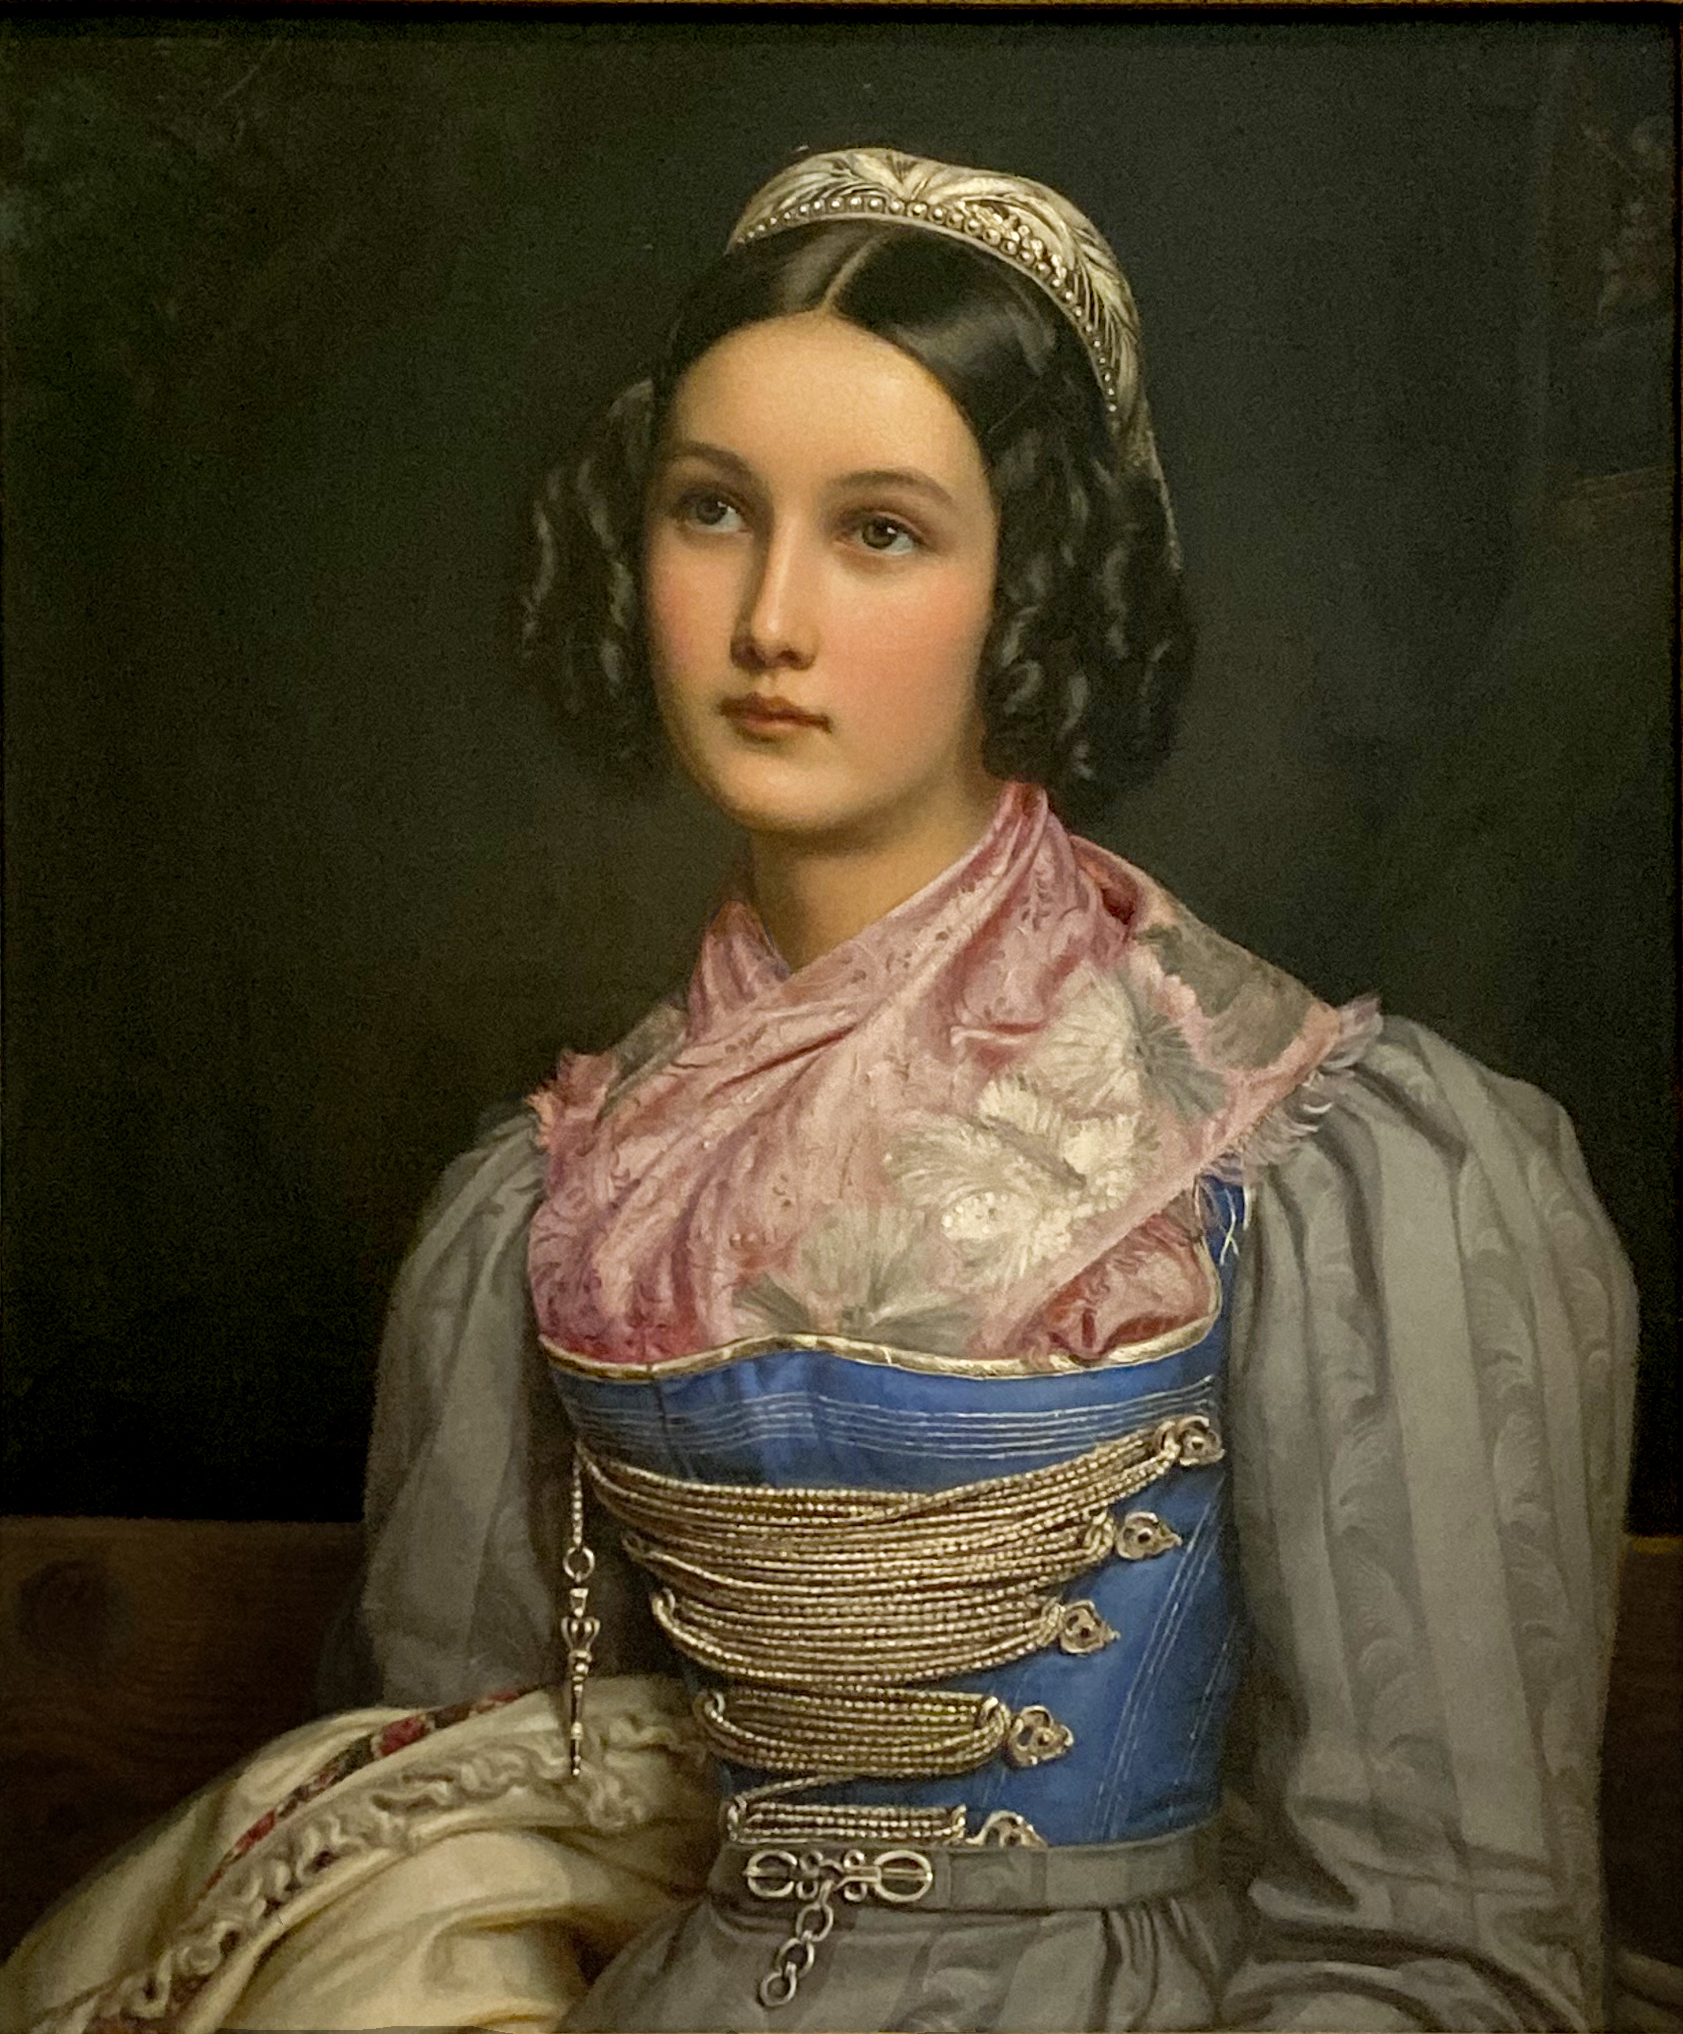 https://upload.wikimedia.org/wikipedia/commons/a/a2/Helene_Sedlmayr.png